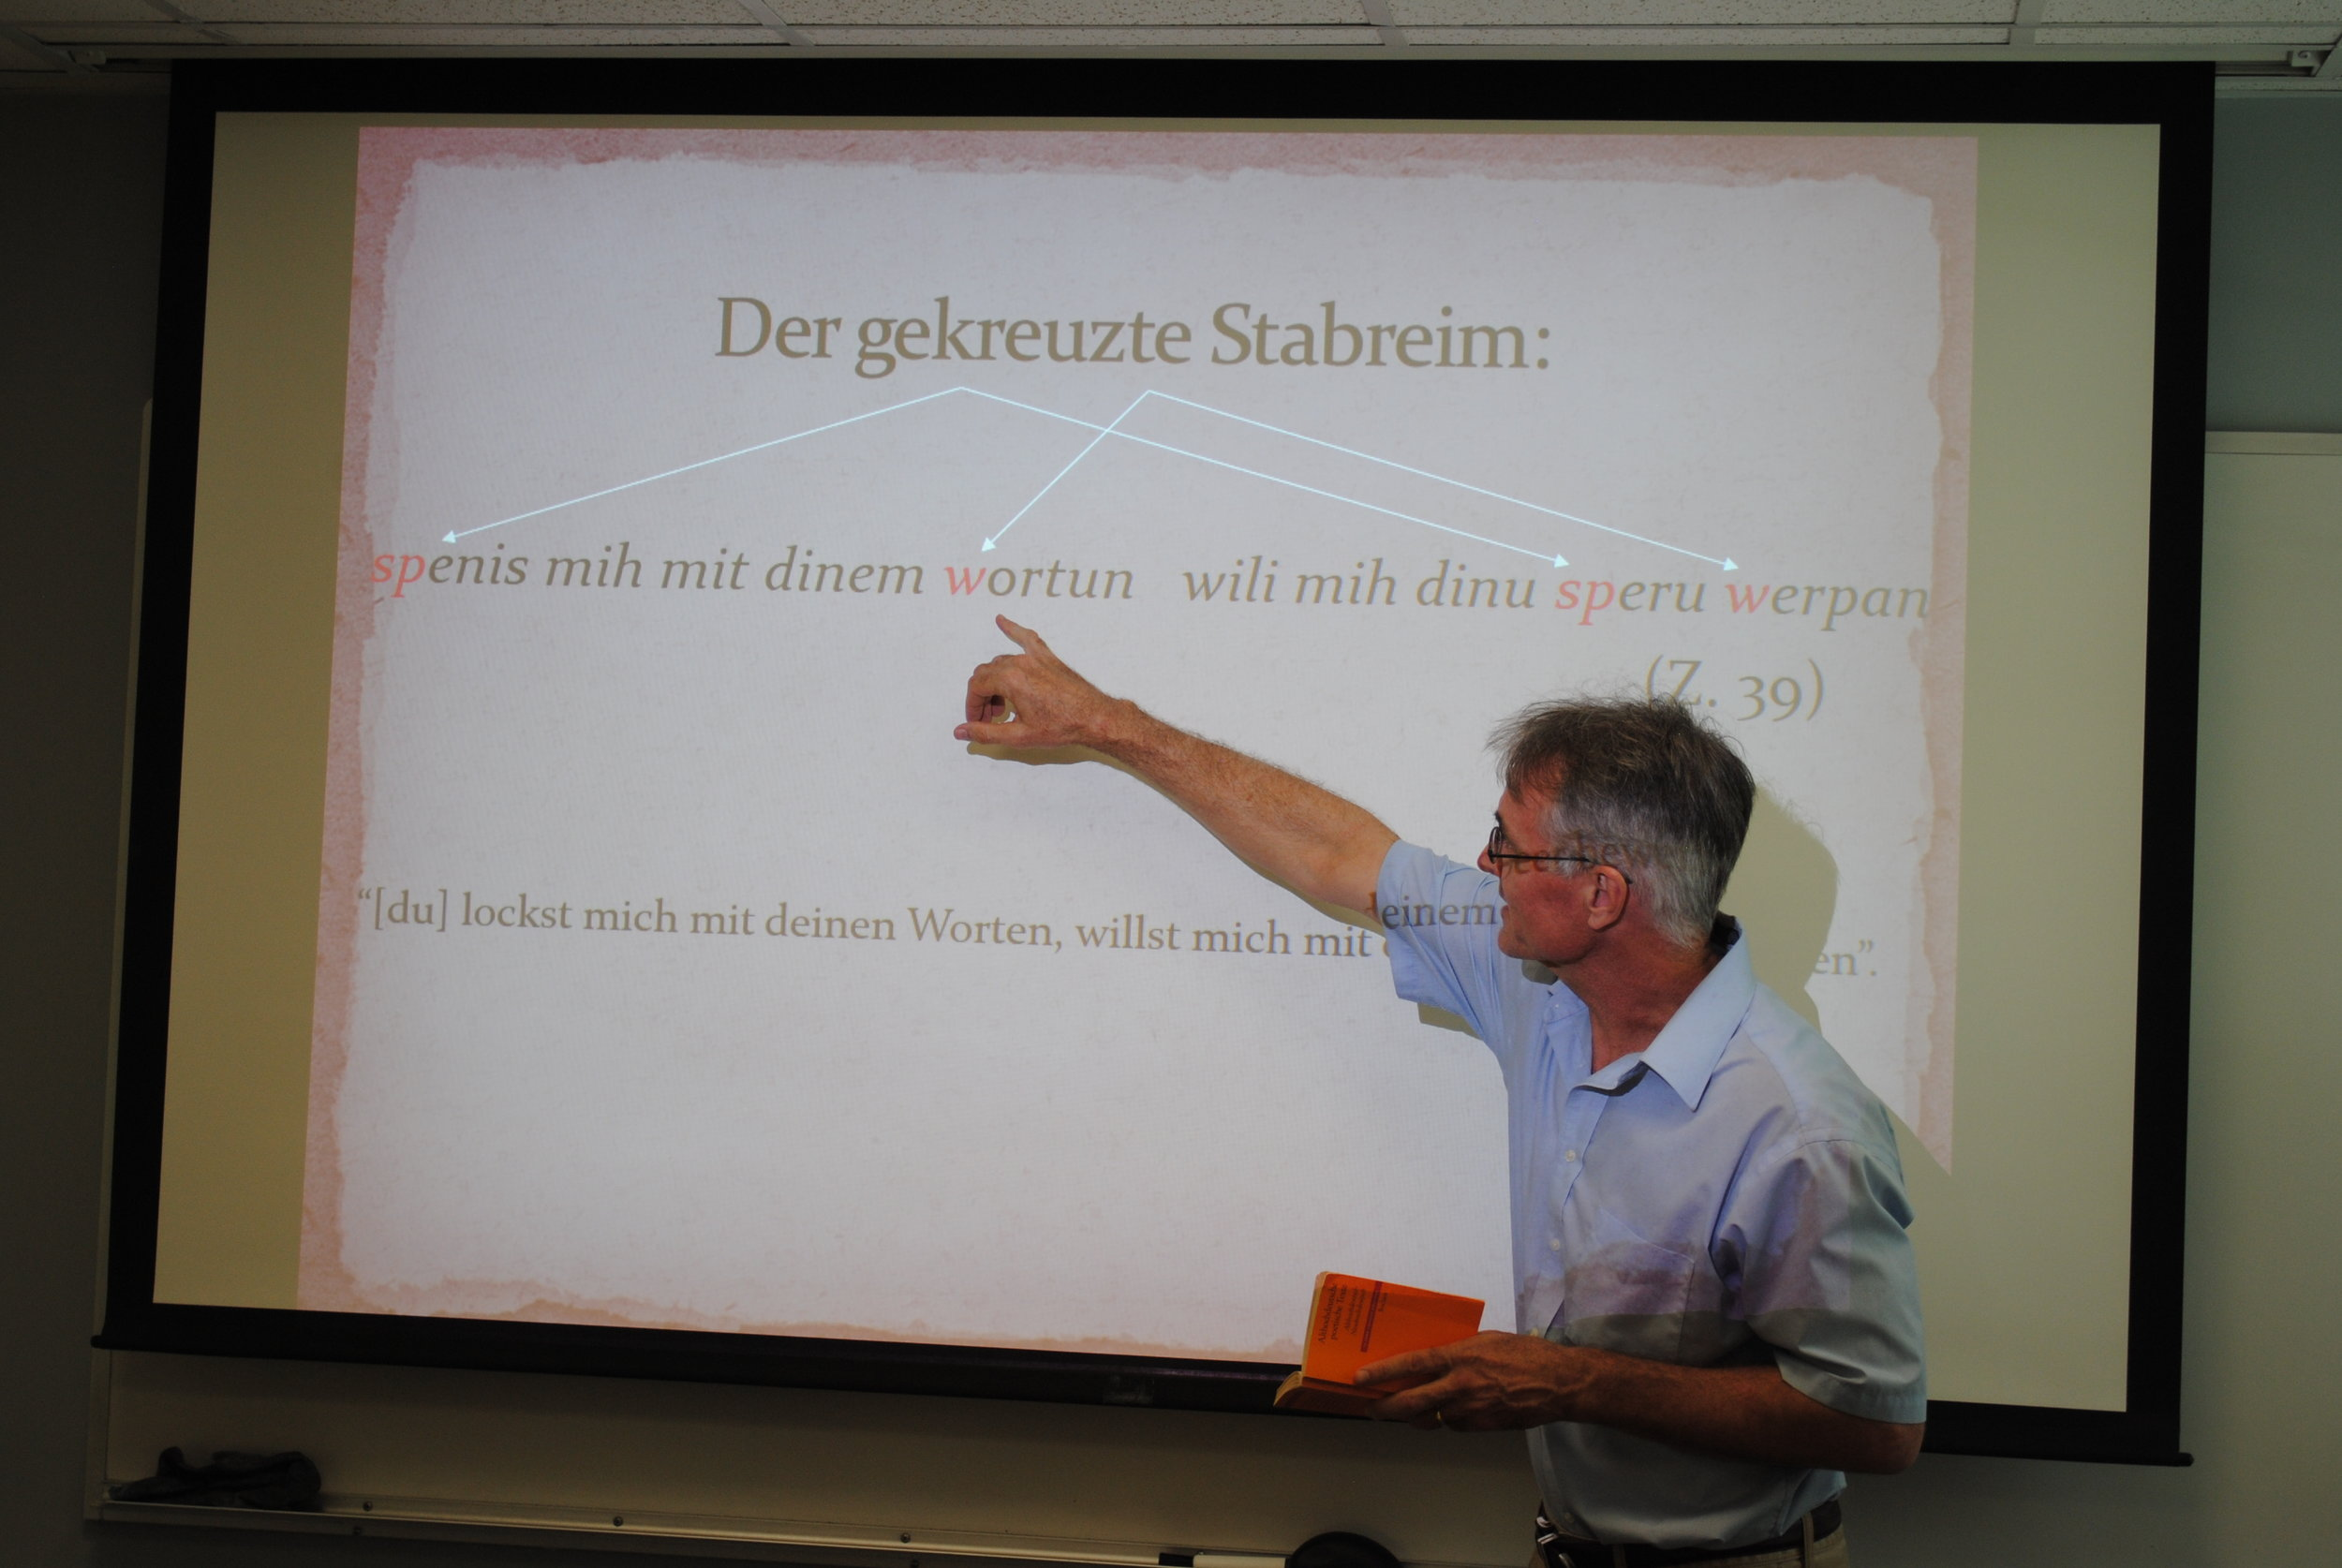 XIV. ALEX SAGER - Department head of the University of Georgia's Department of Germanic and Slavic Studies. Summer 2017.